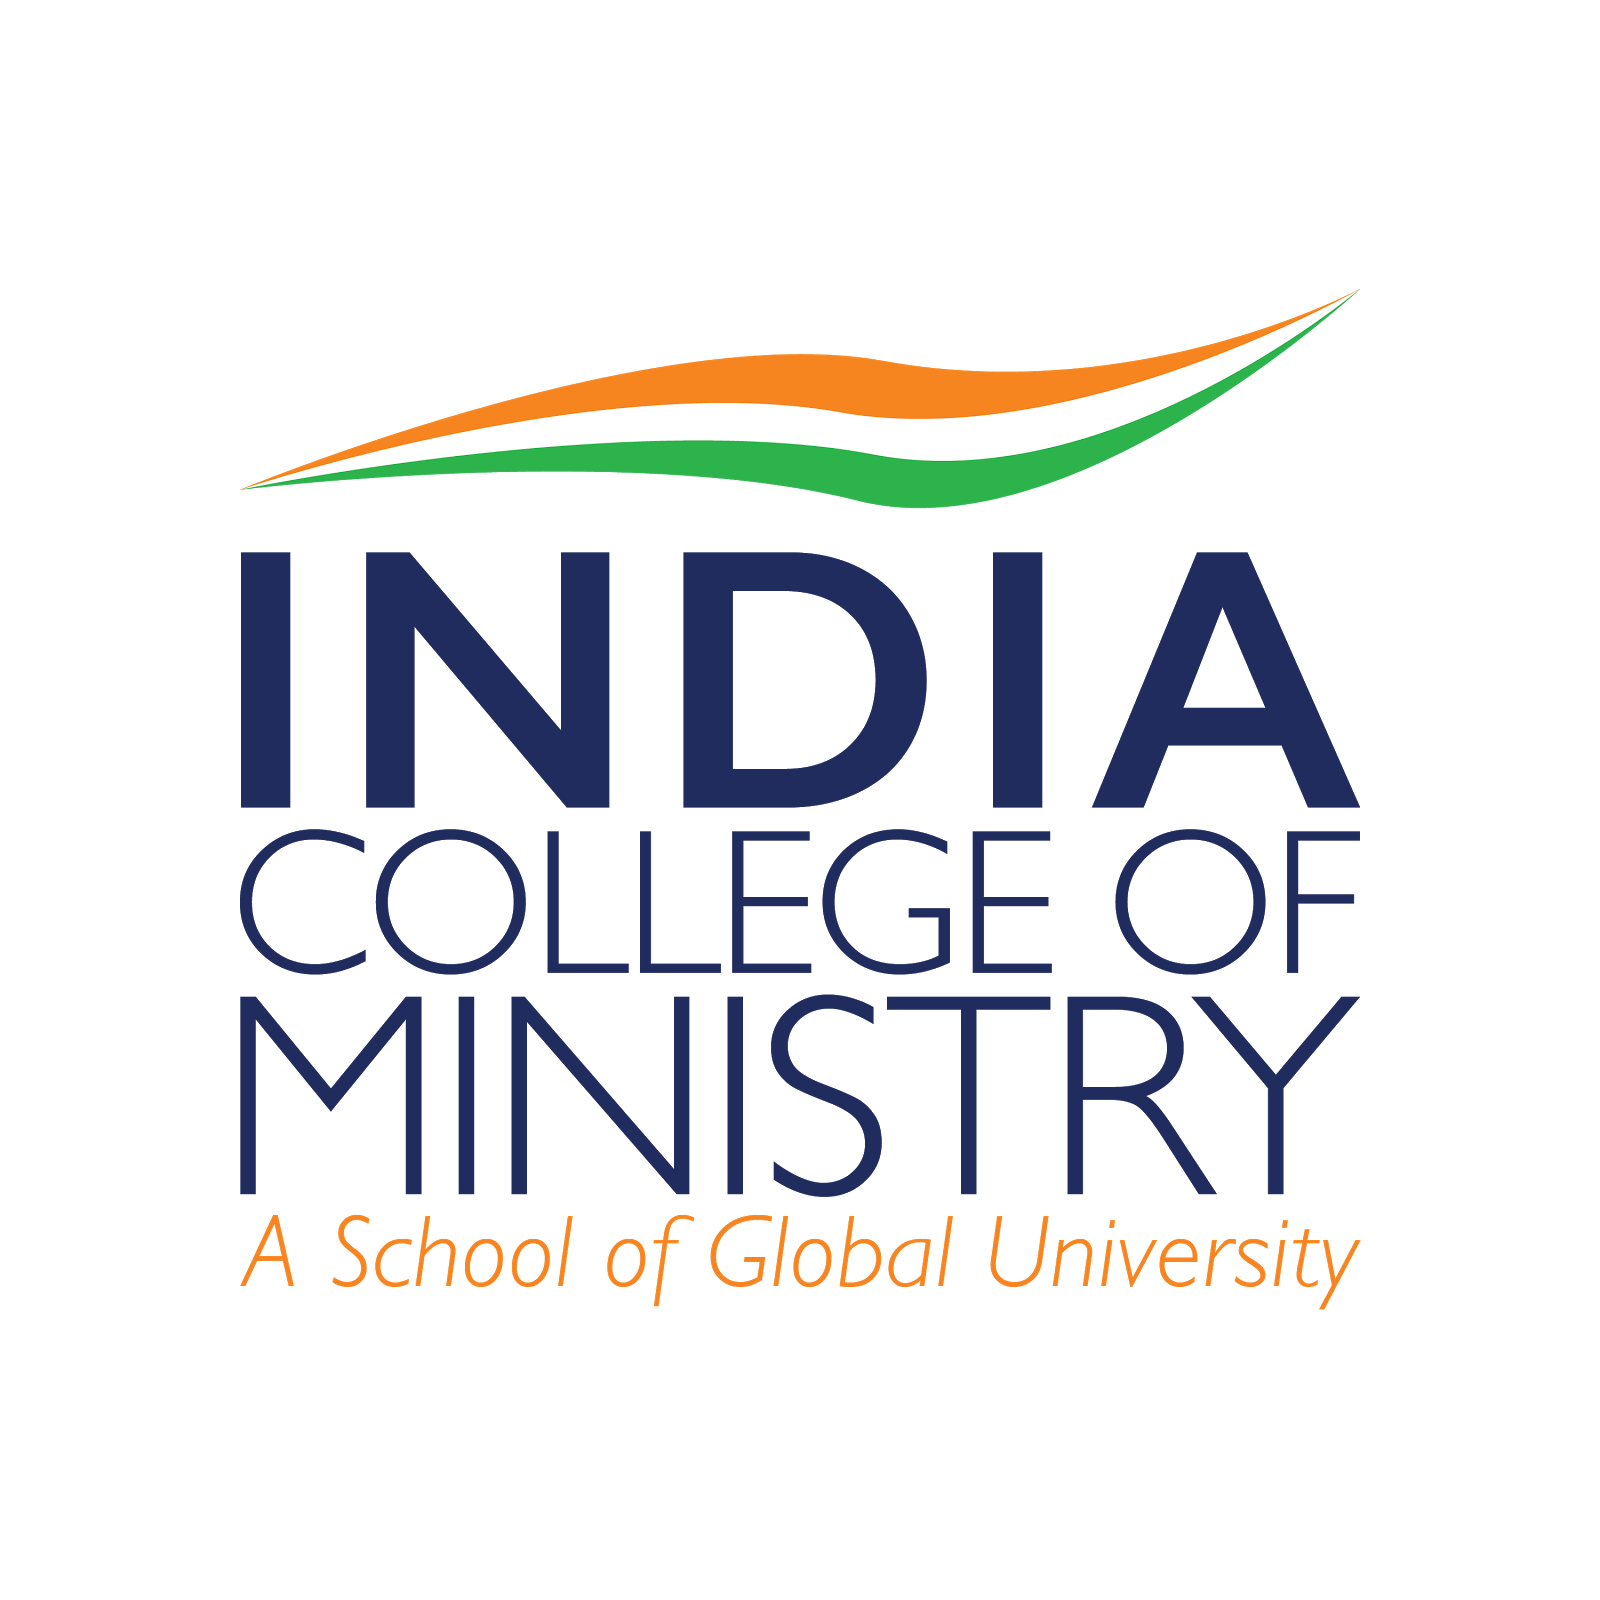 INDIA COLLEGE OF MINISTRY